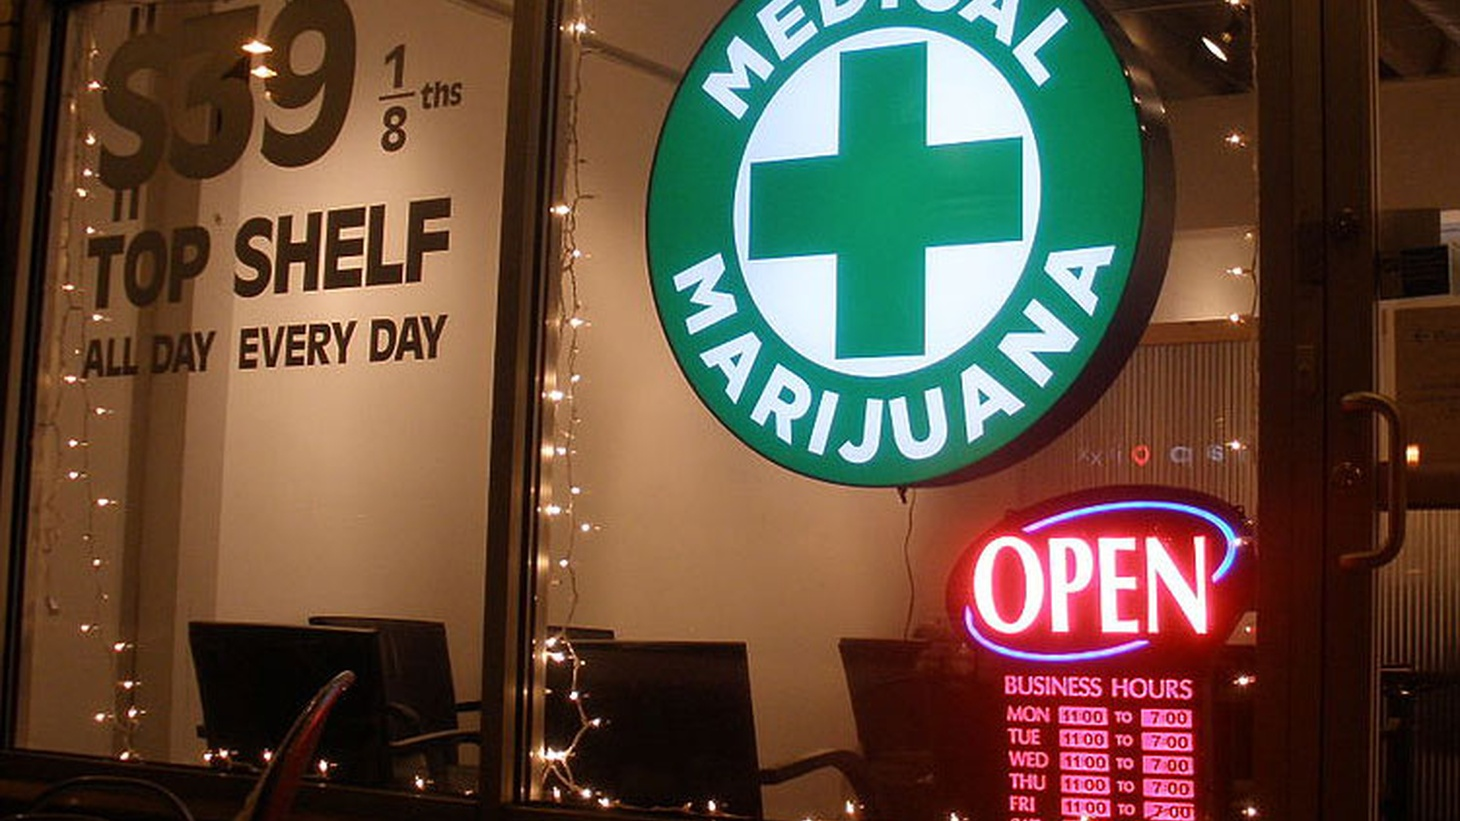 About 135 medical marijuana clinics are legal in Los Angeles, but 945 are registered to pay taxes. That means big revenue for the city -- from illegal businesses. We hear why some council members want that to end, even though the city always needs money.